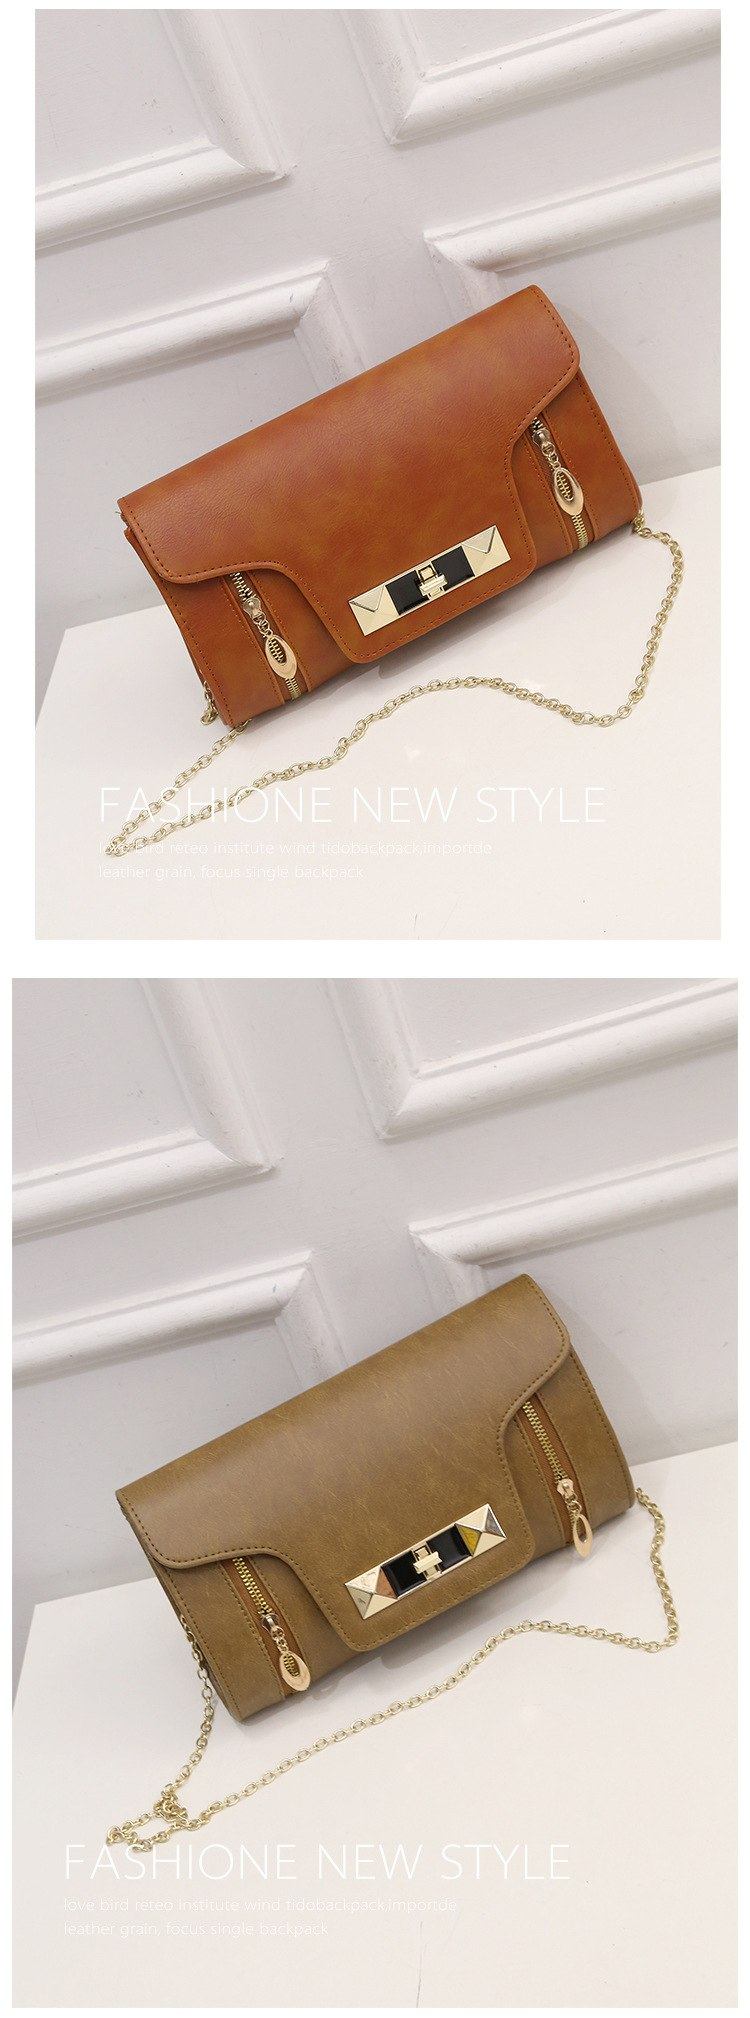 Double zipper chain handbag Casual Clutch turn lock to finalize the design party a undertakes to single shoulder women bag-50